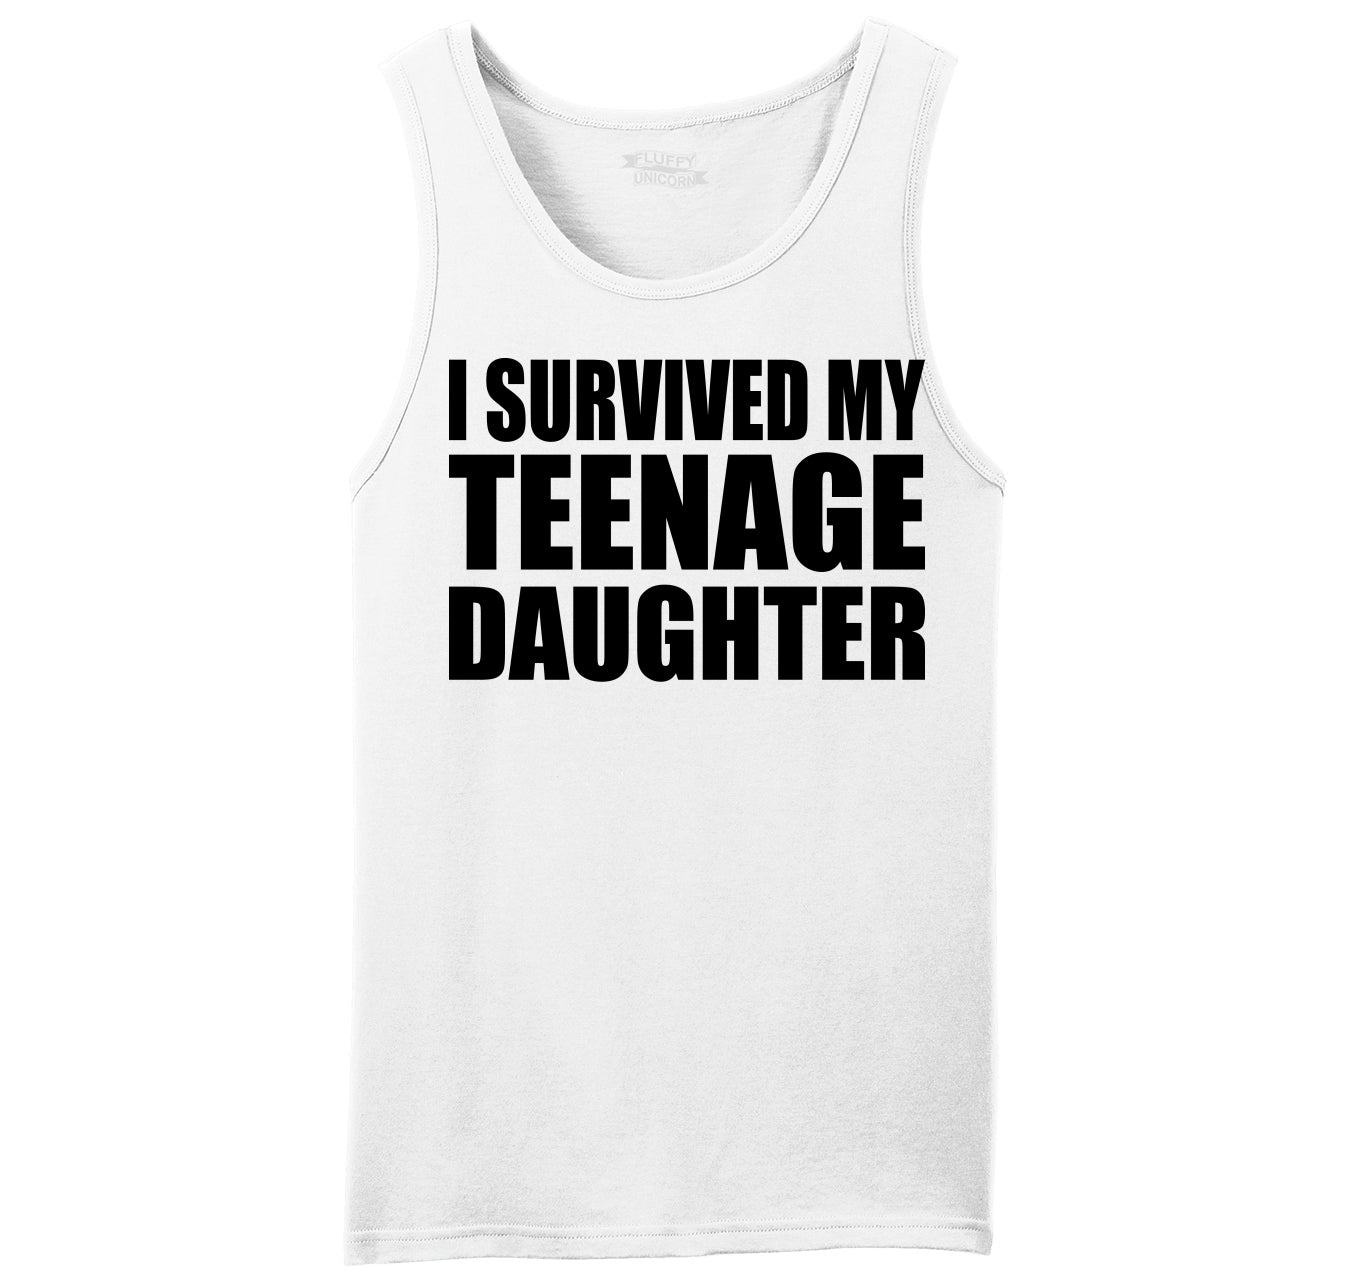 631c90d0ebbef5 I Survived My Teenage Daughter Cute Mom   Dad Gift Funny Shirt Mens  Sleeveless Tank Top